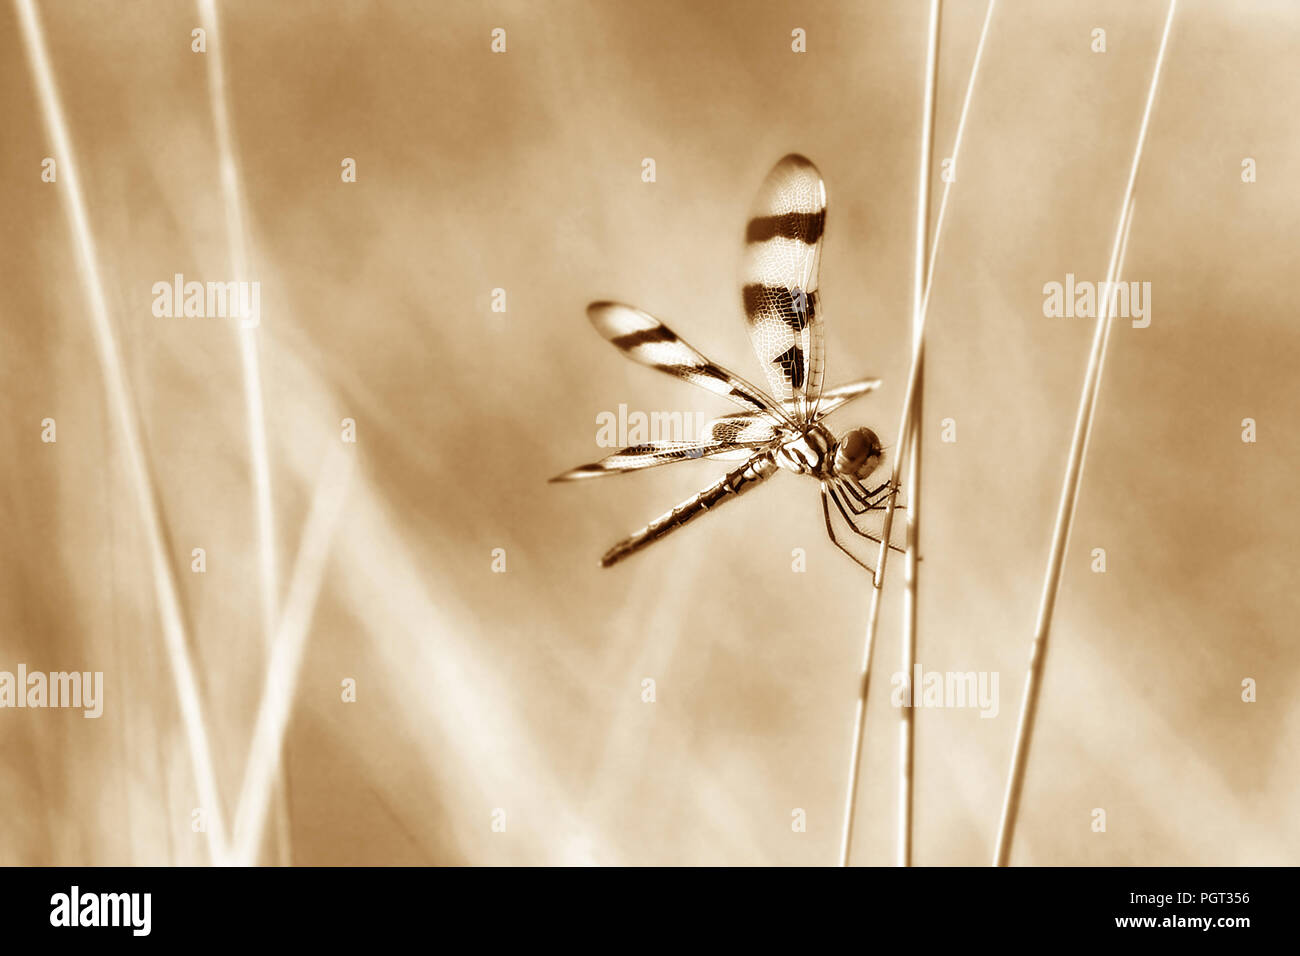 Dragonfly perched on wild grasses in sepia tones - Stock Image